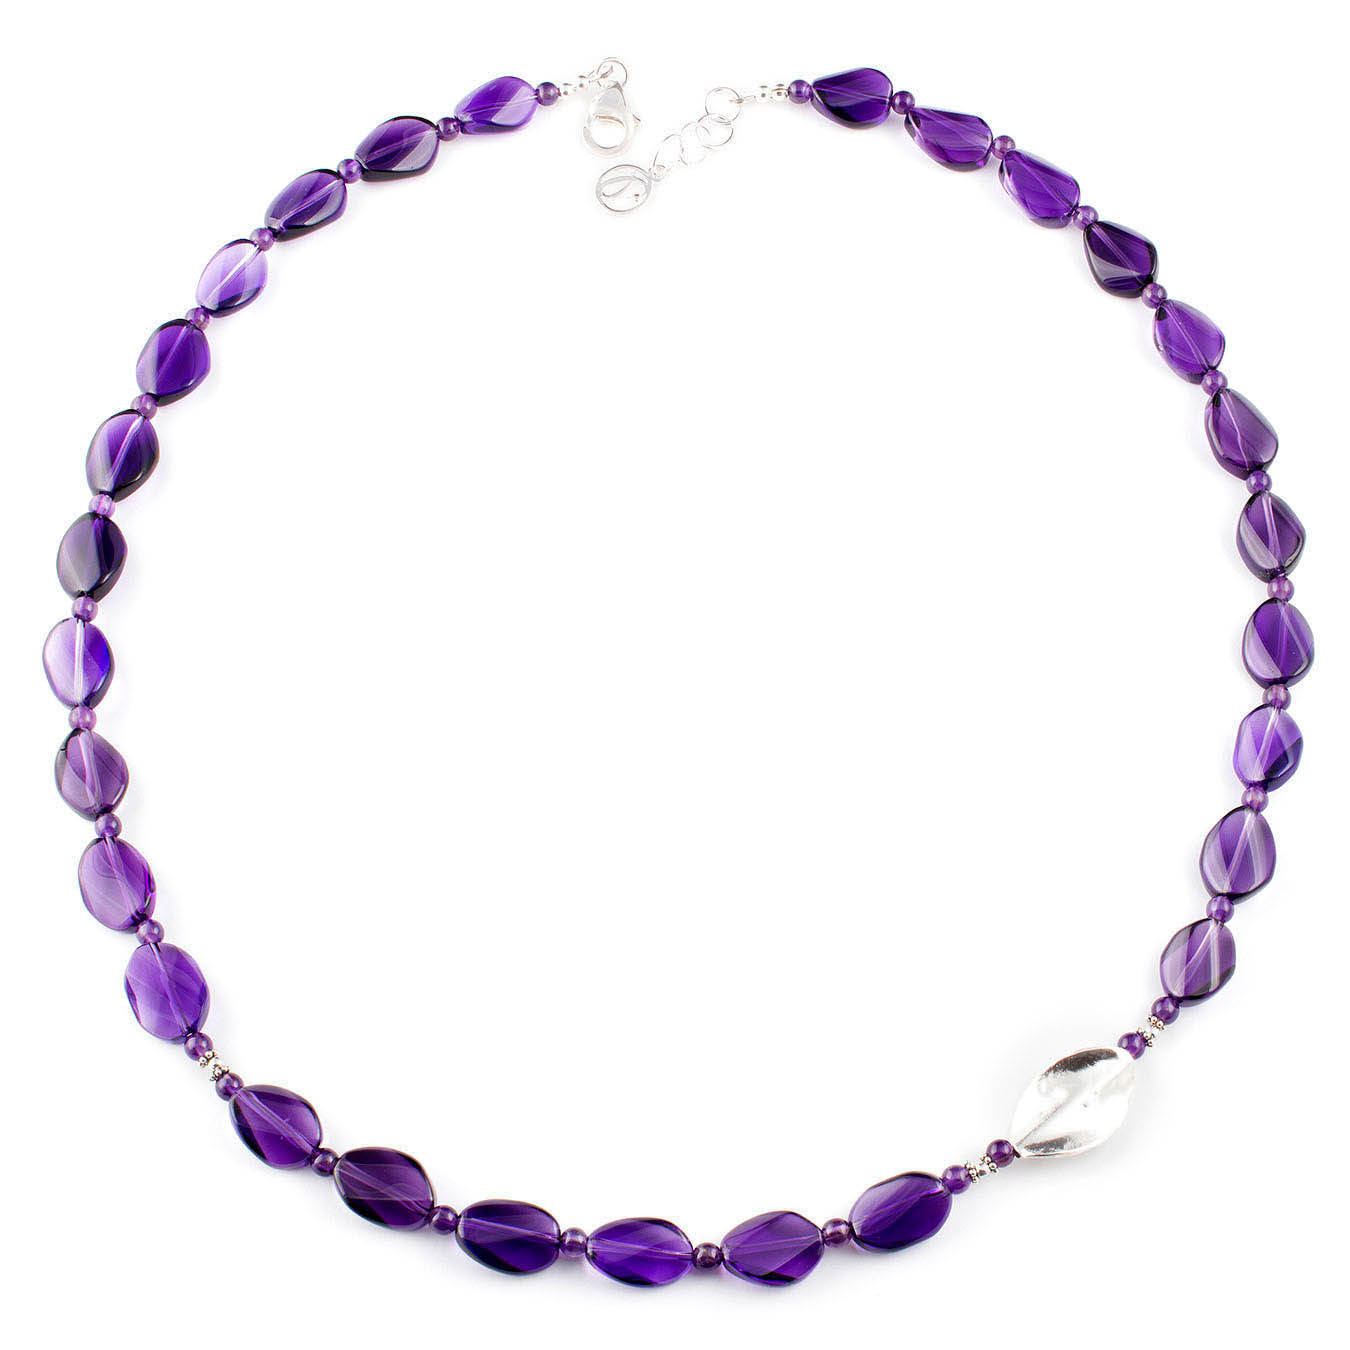 Handcrafted necklace made with purple amethyst stones and thai silver